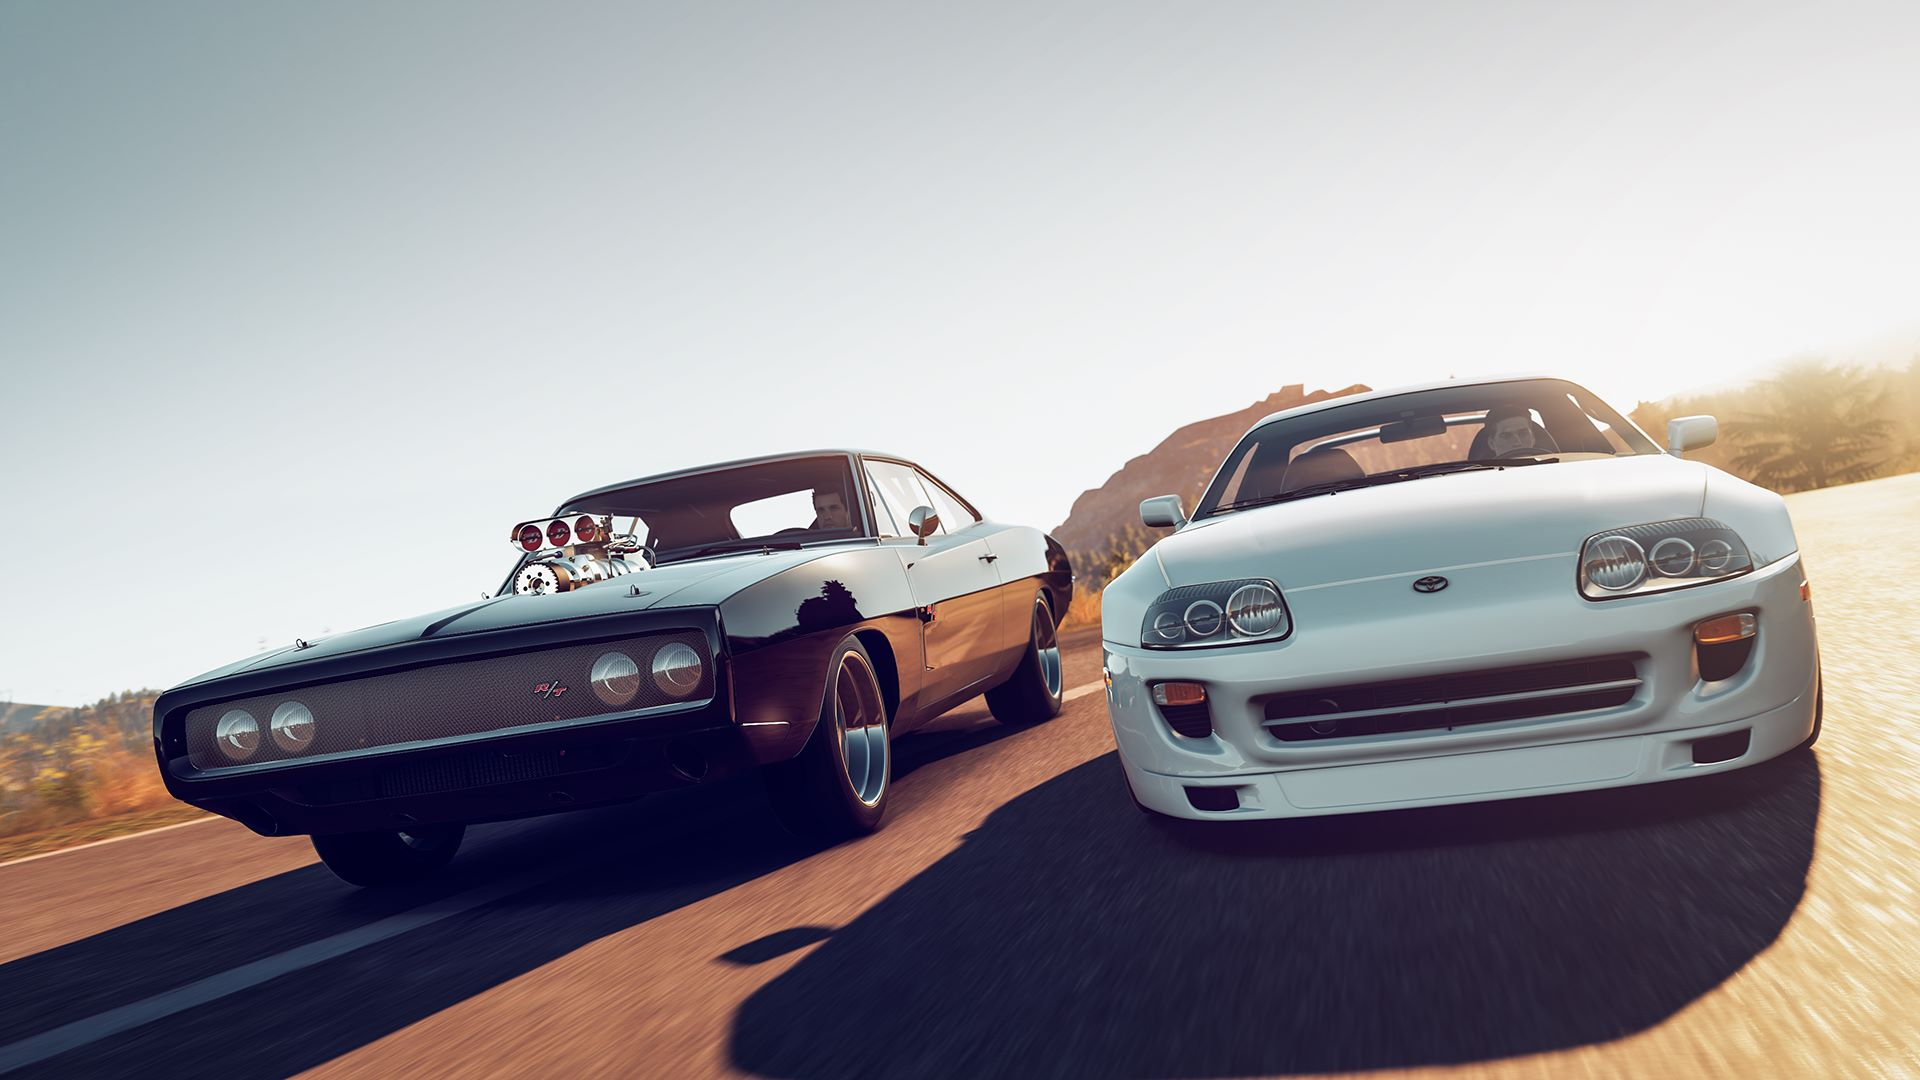 forza horizon 2 pack de voitures furious 7. Black Bedroom Furniture Sets. Home Design Ideas